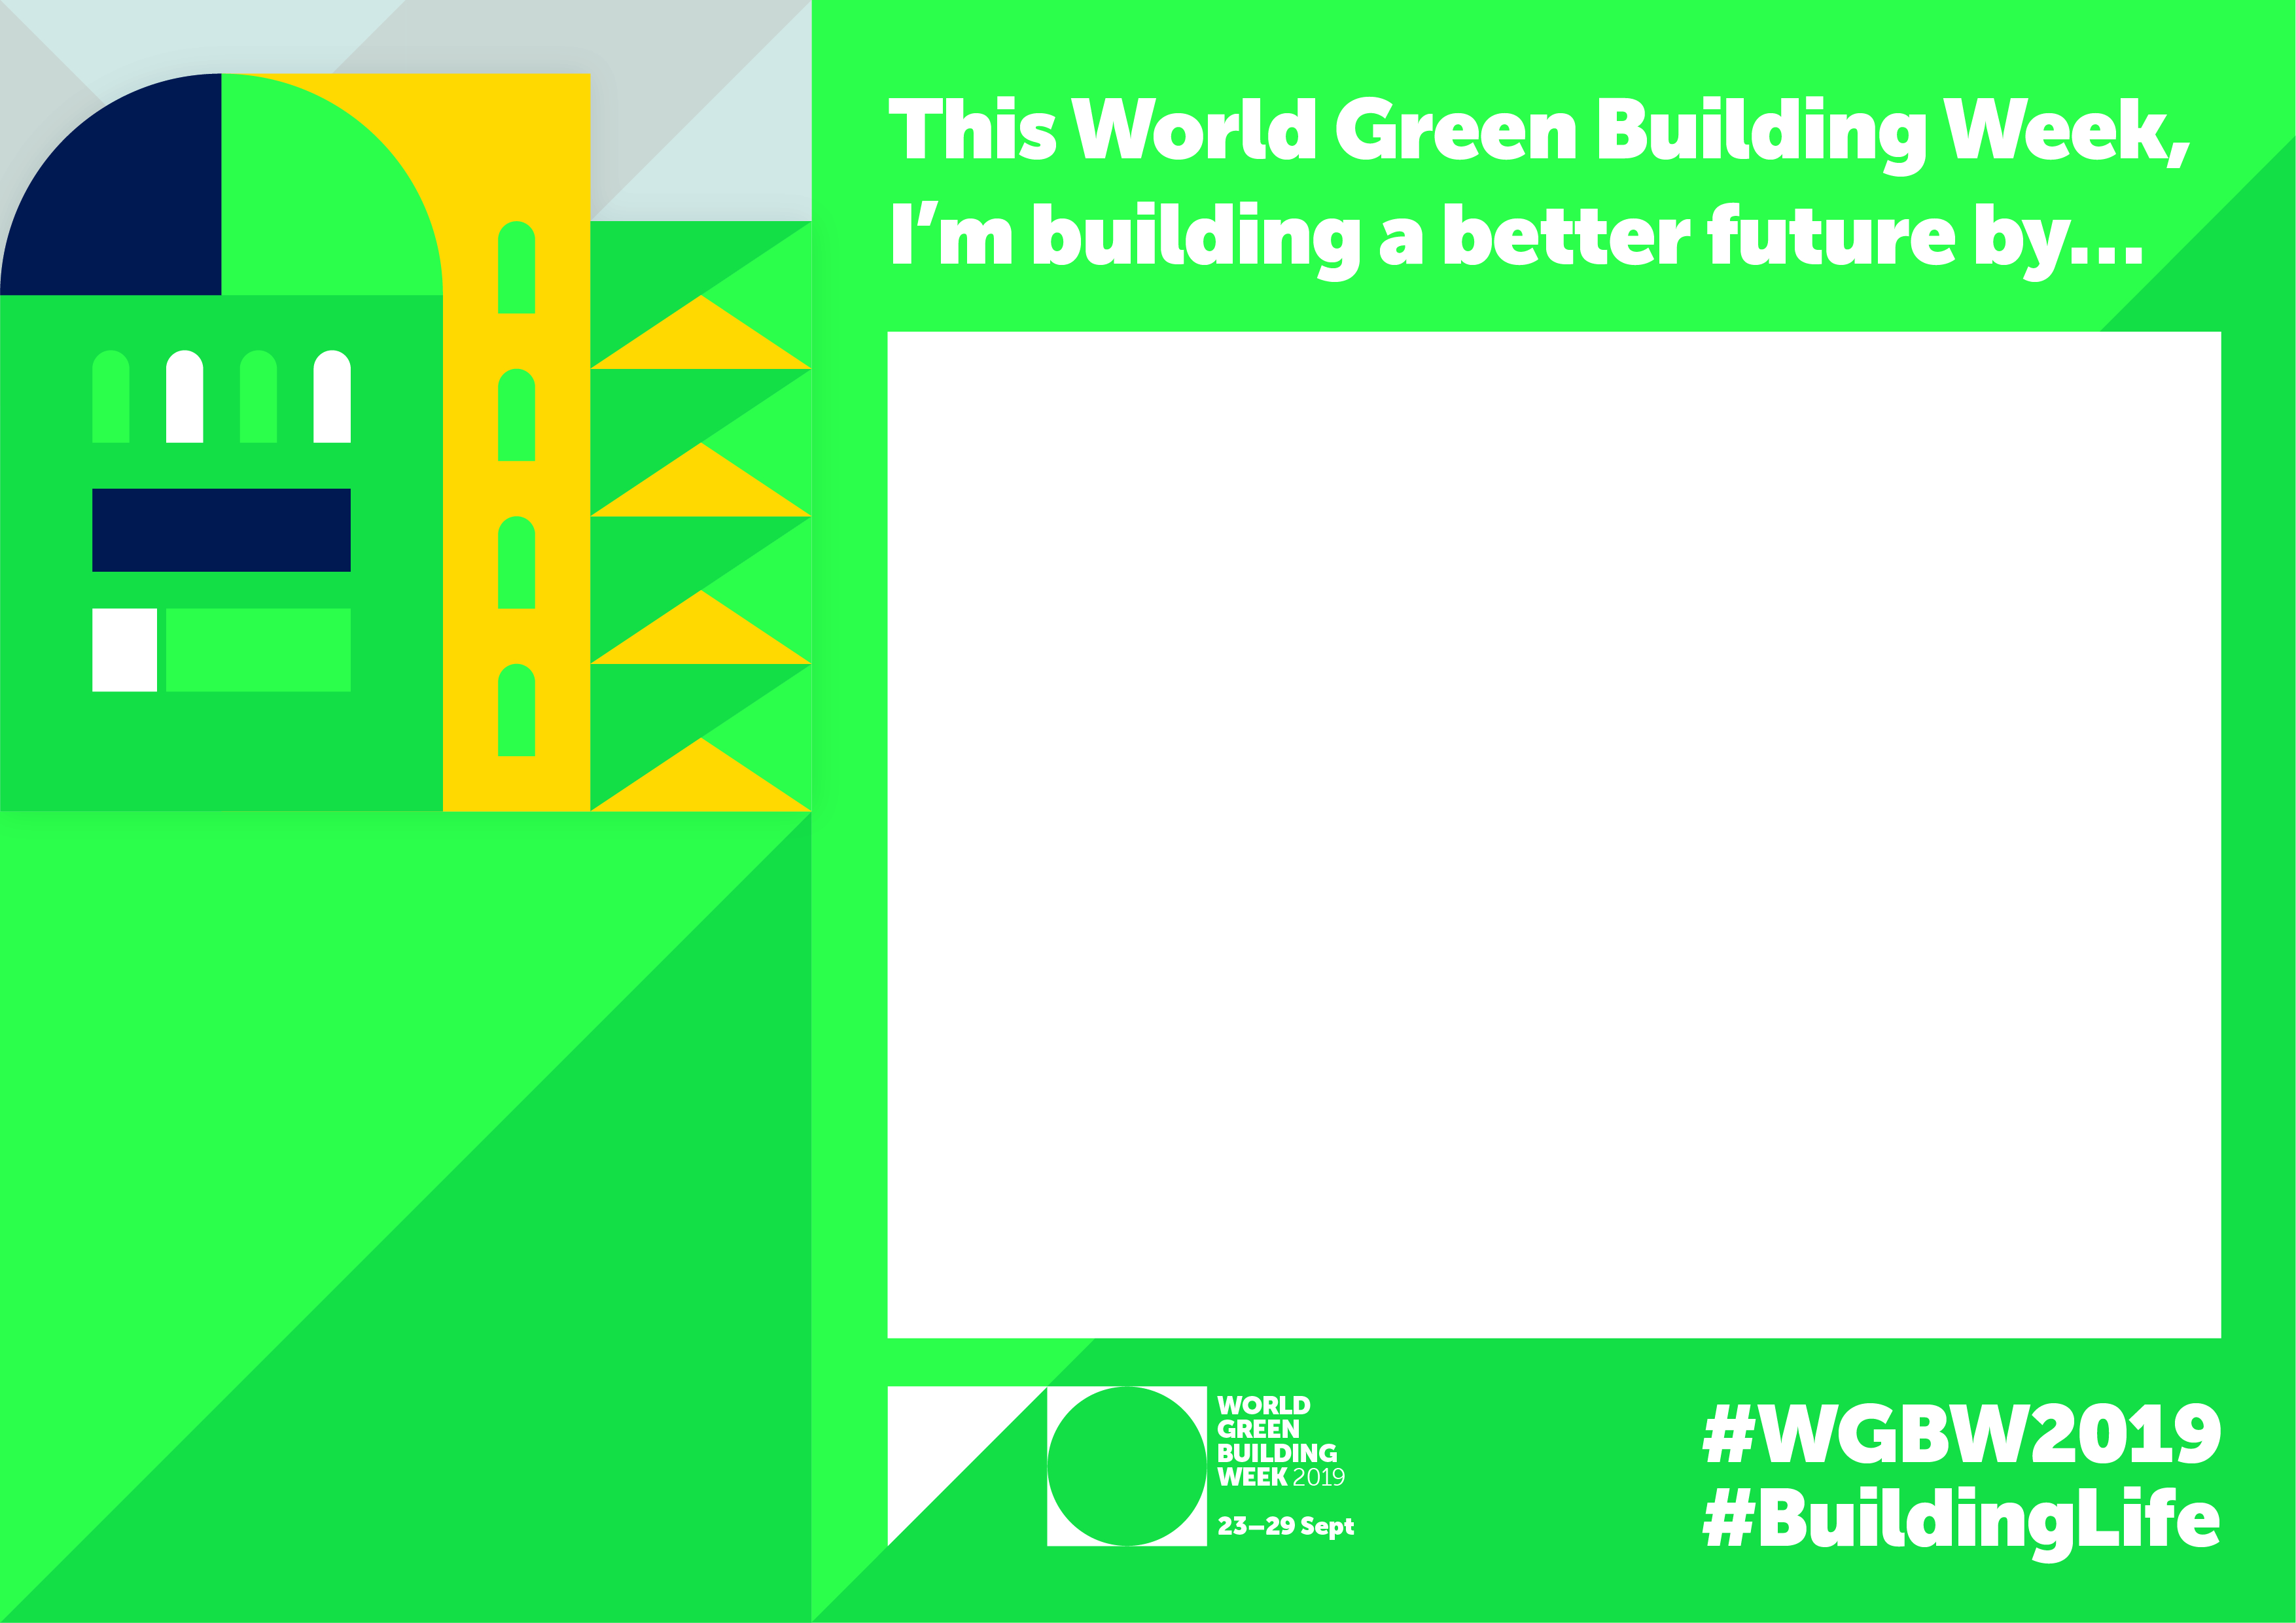 Take the My BuildingLife pledge for World Green Building Week